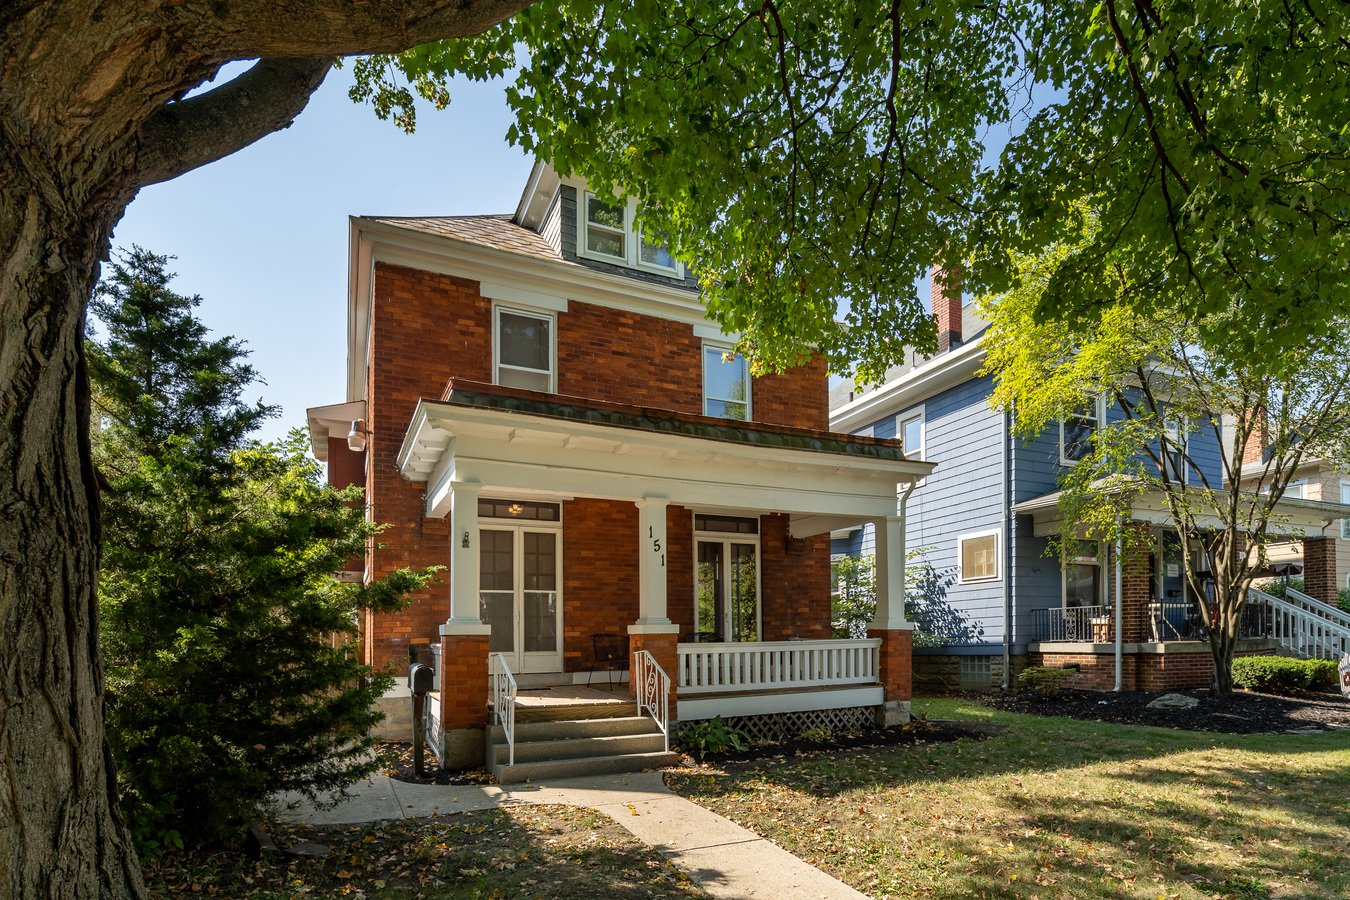 5 Bedrooms 2 Bathrooms House for rent at 151 E Oakland Ave in Columbus, OH